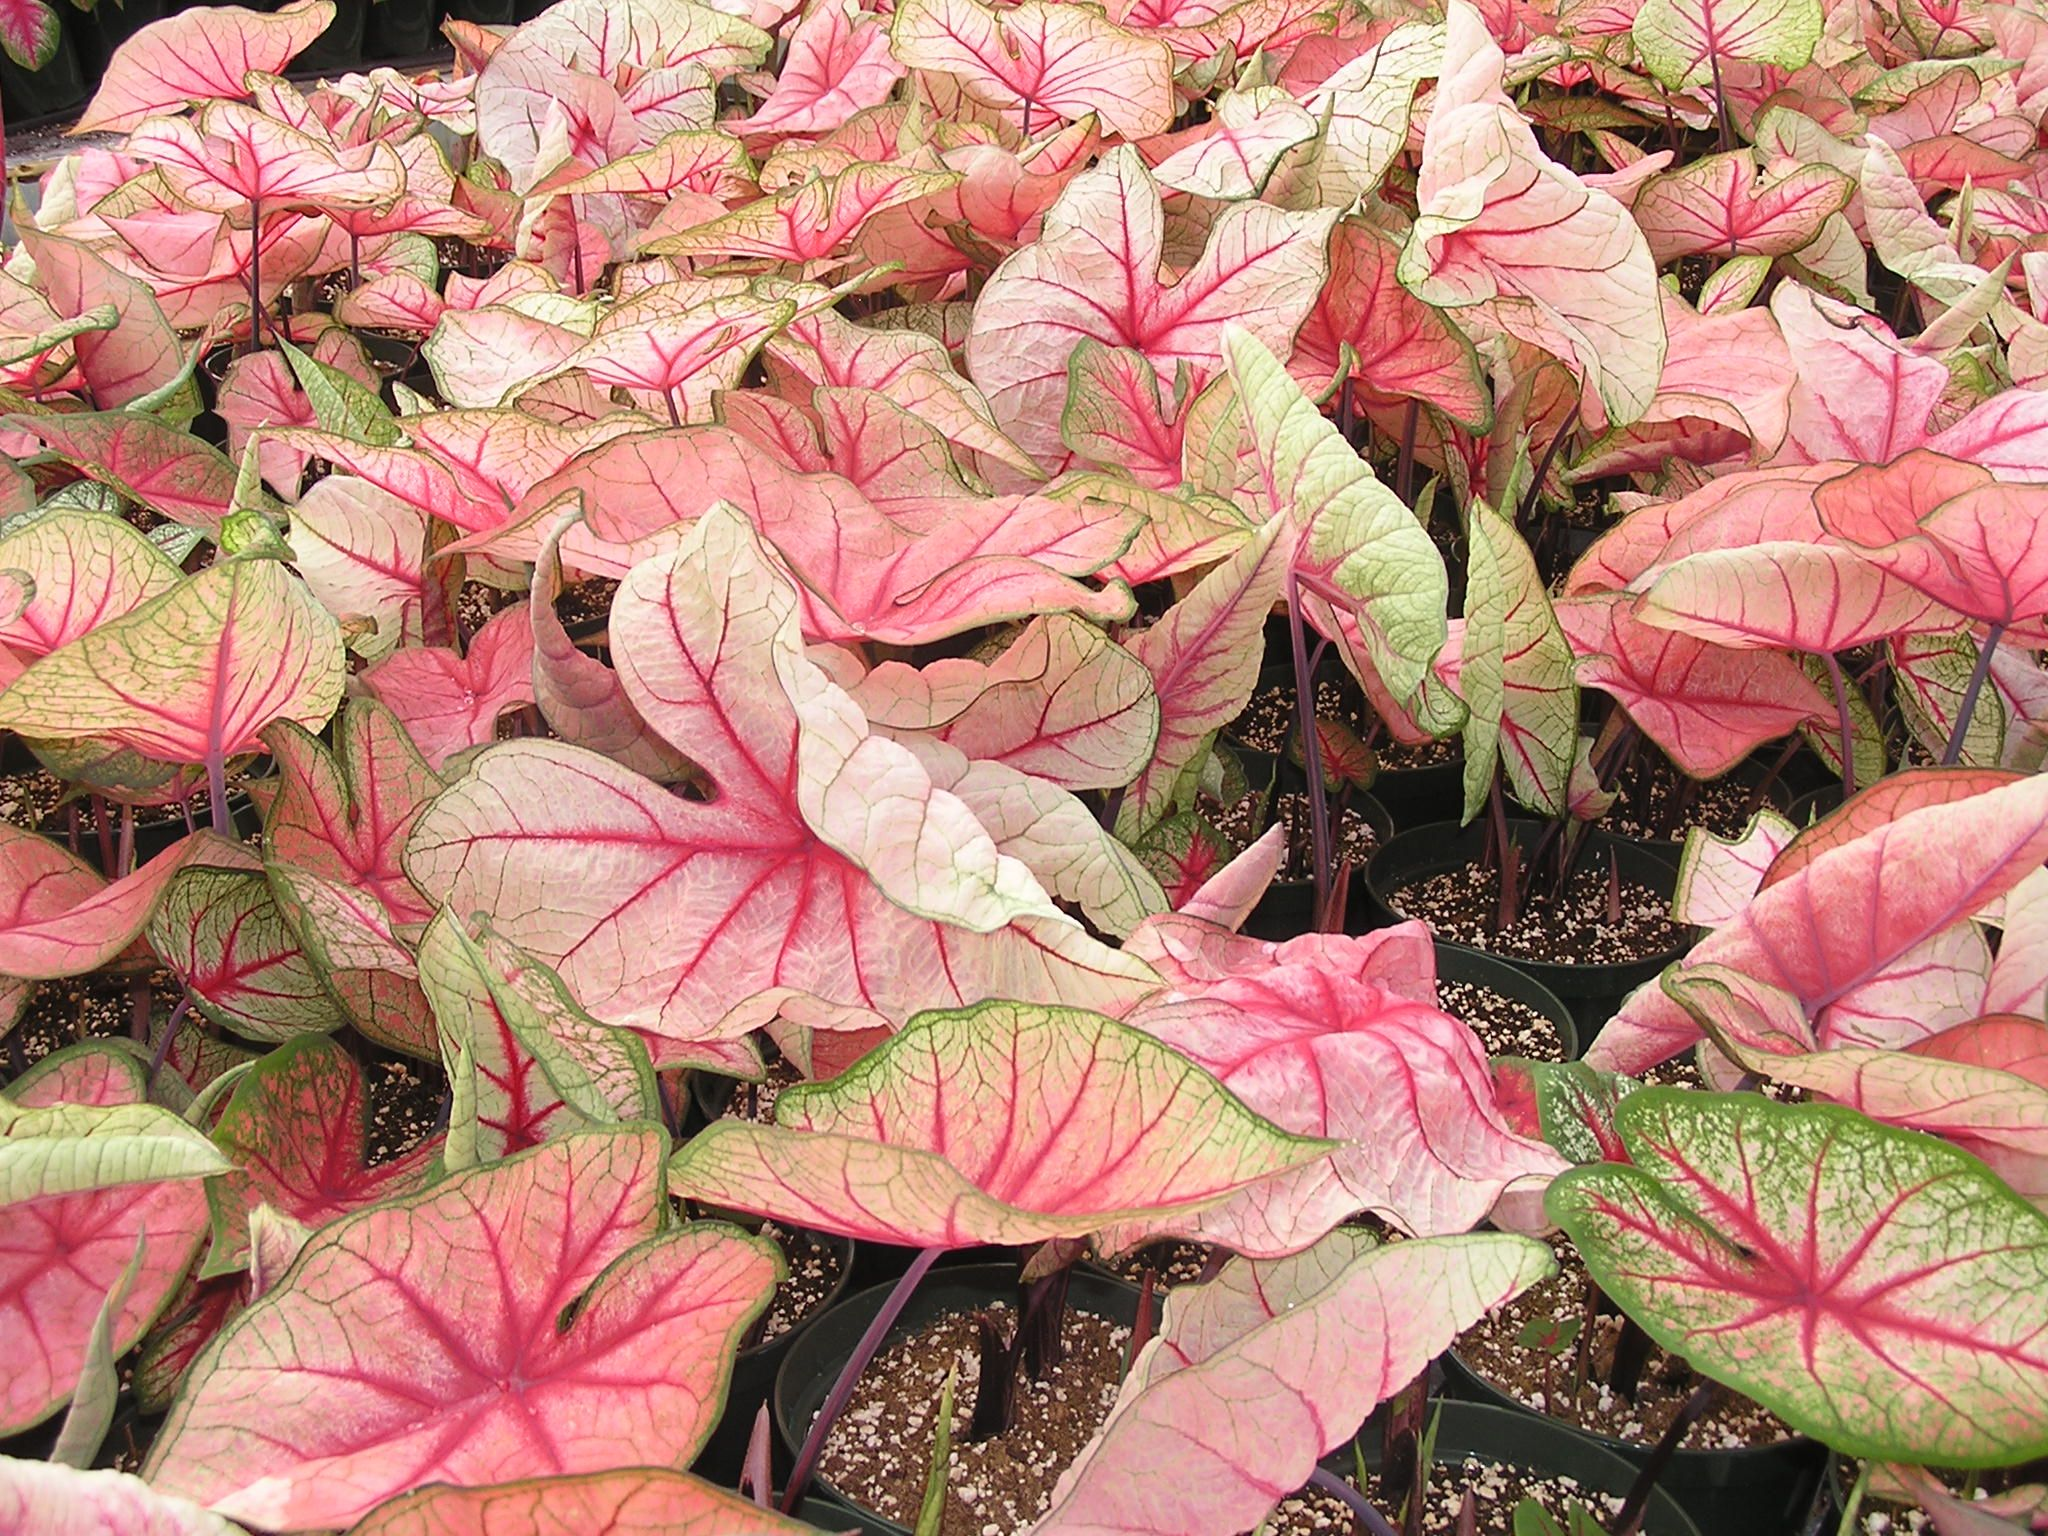 Caladium 39 White Queen 39 Is A Tuberous Rooted Perennial Most